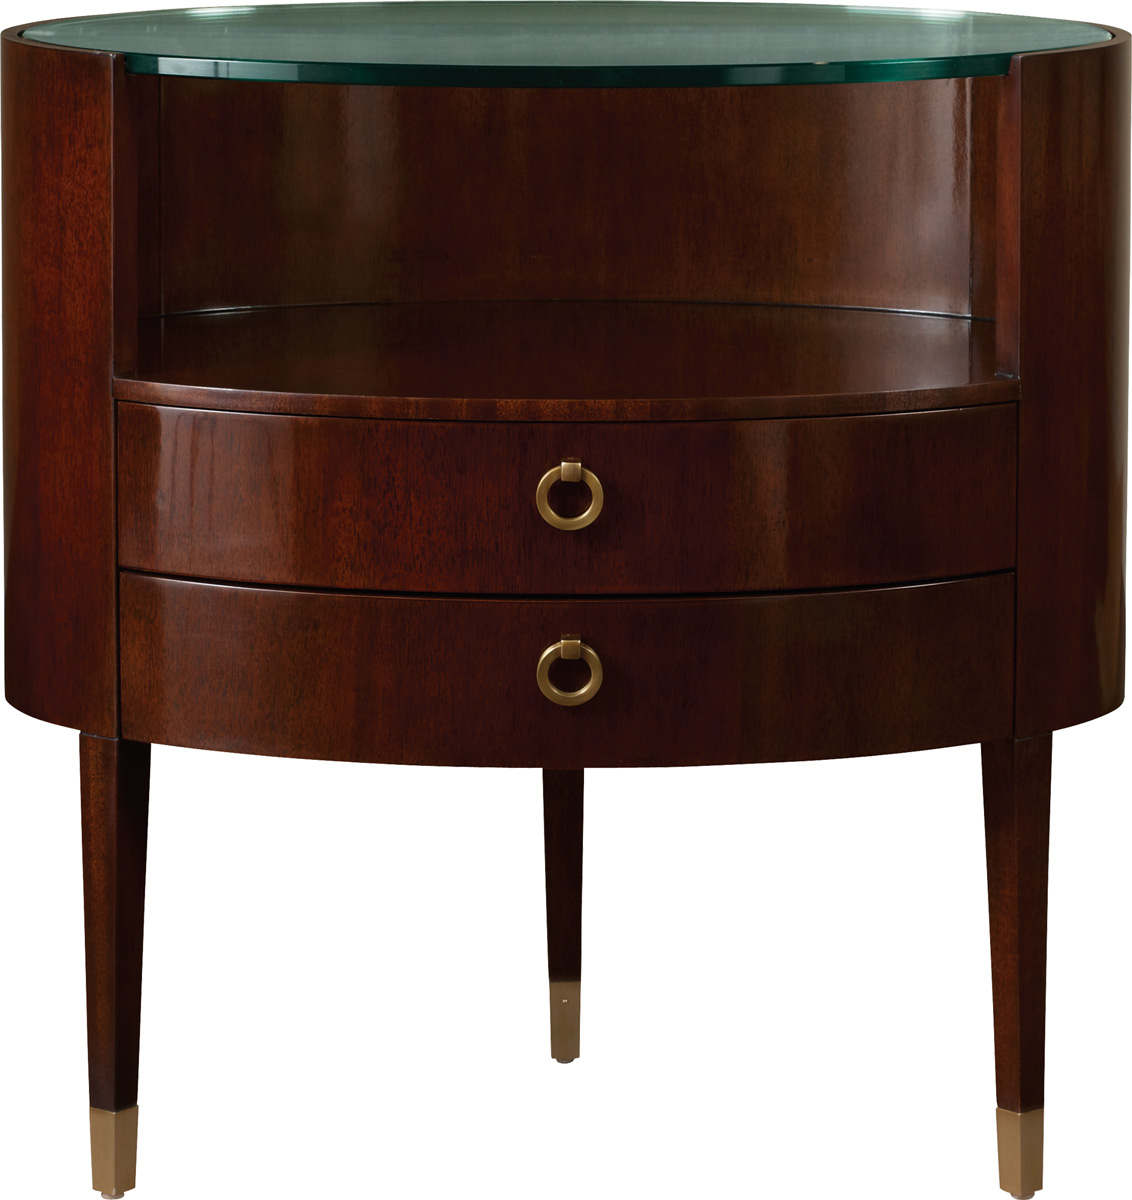 OVAL NIGHT TABLE